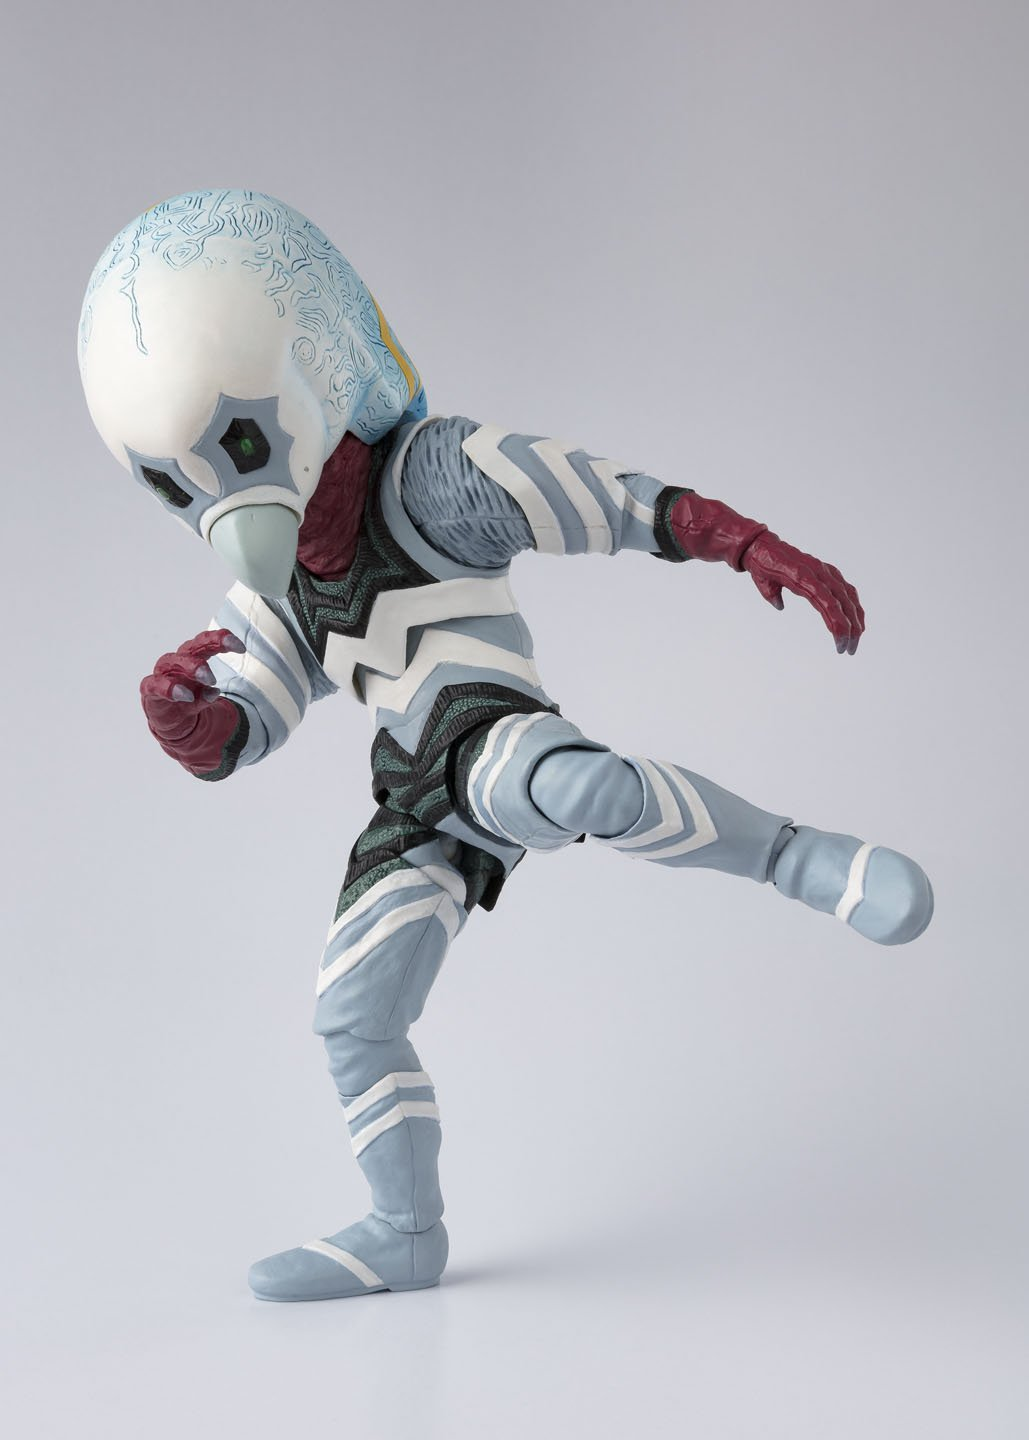 Tamashii Nations S.H Figuarts Alien Guts Ultra Seven Bluefin Distribution Toys BAN19829